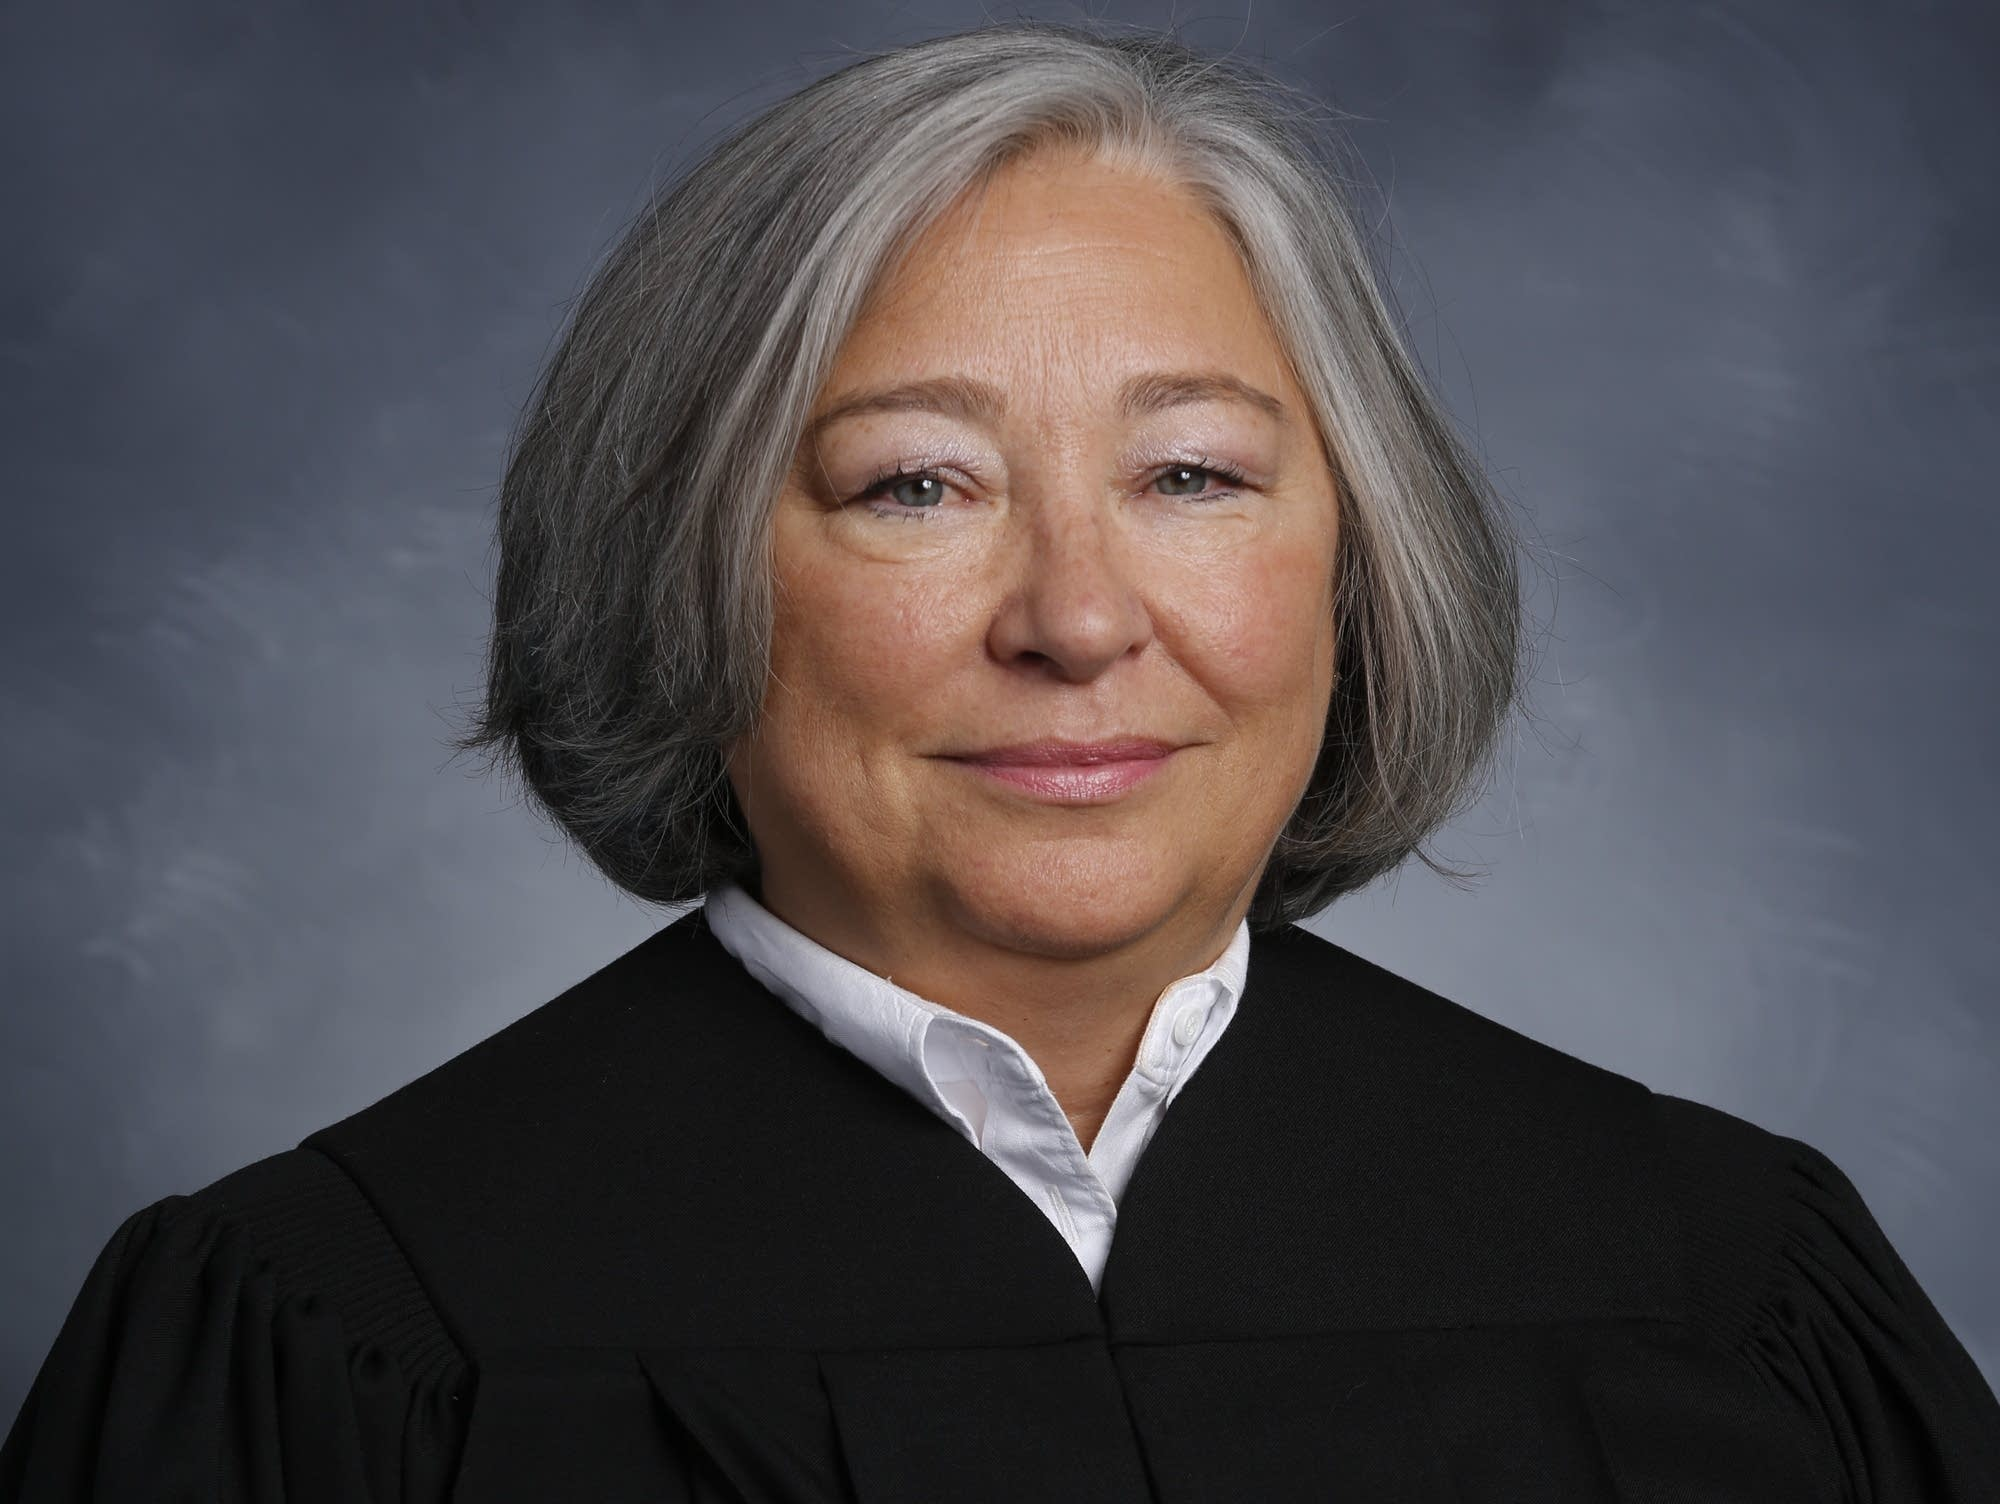 Hennepin County Judge Kathryn Quaintance